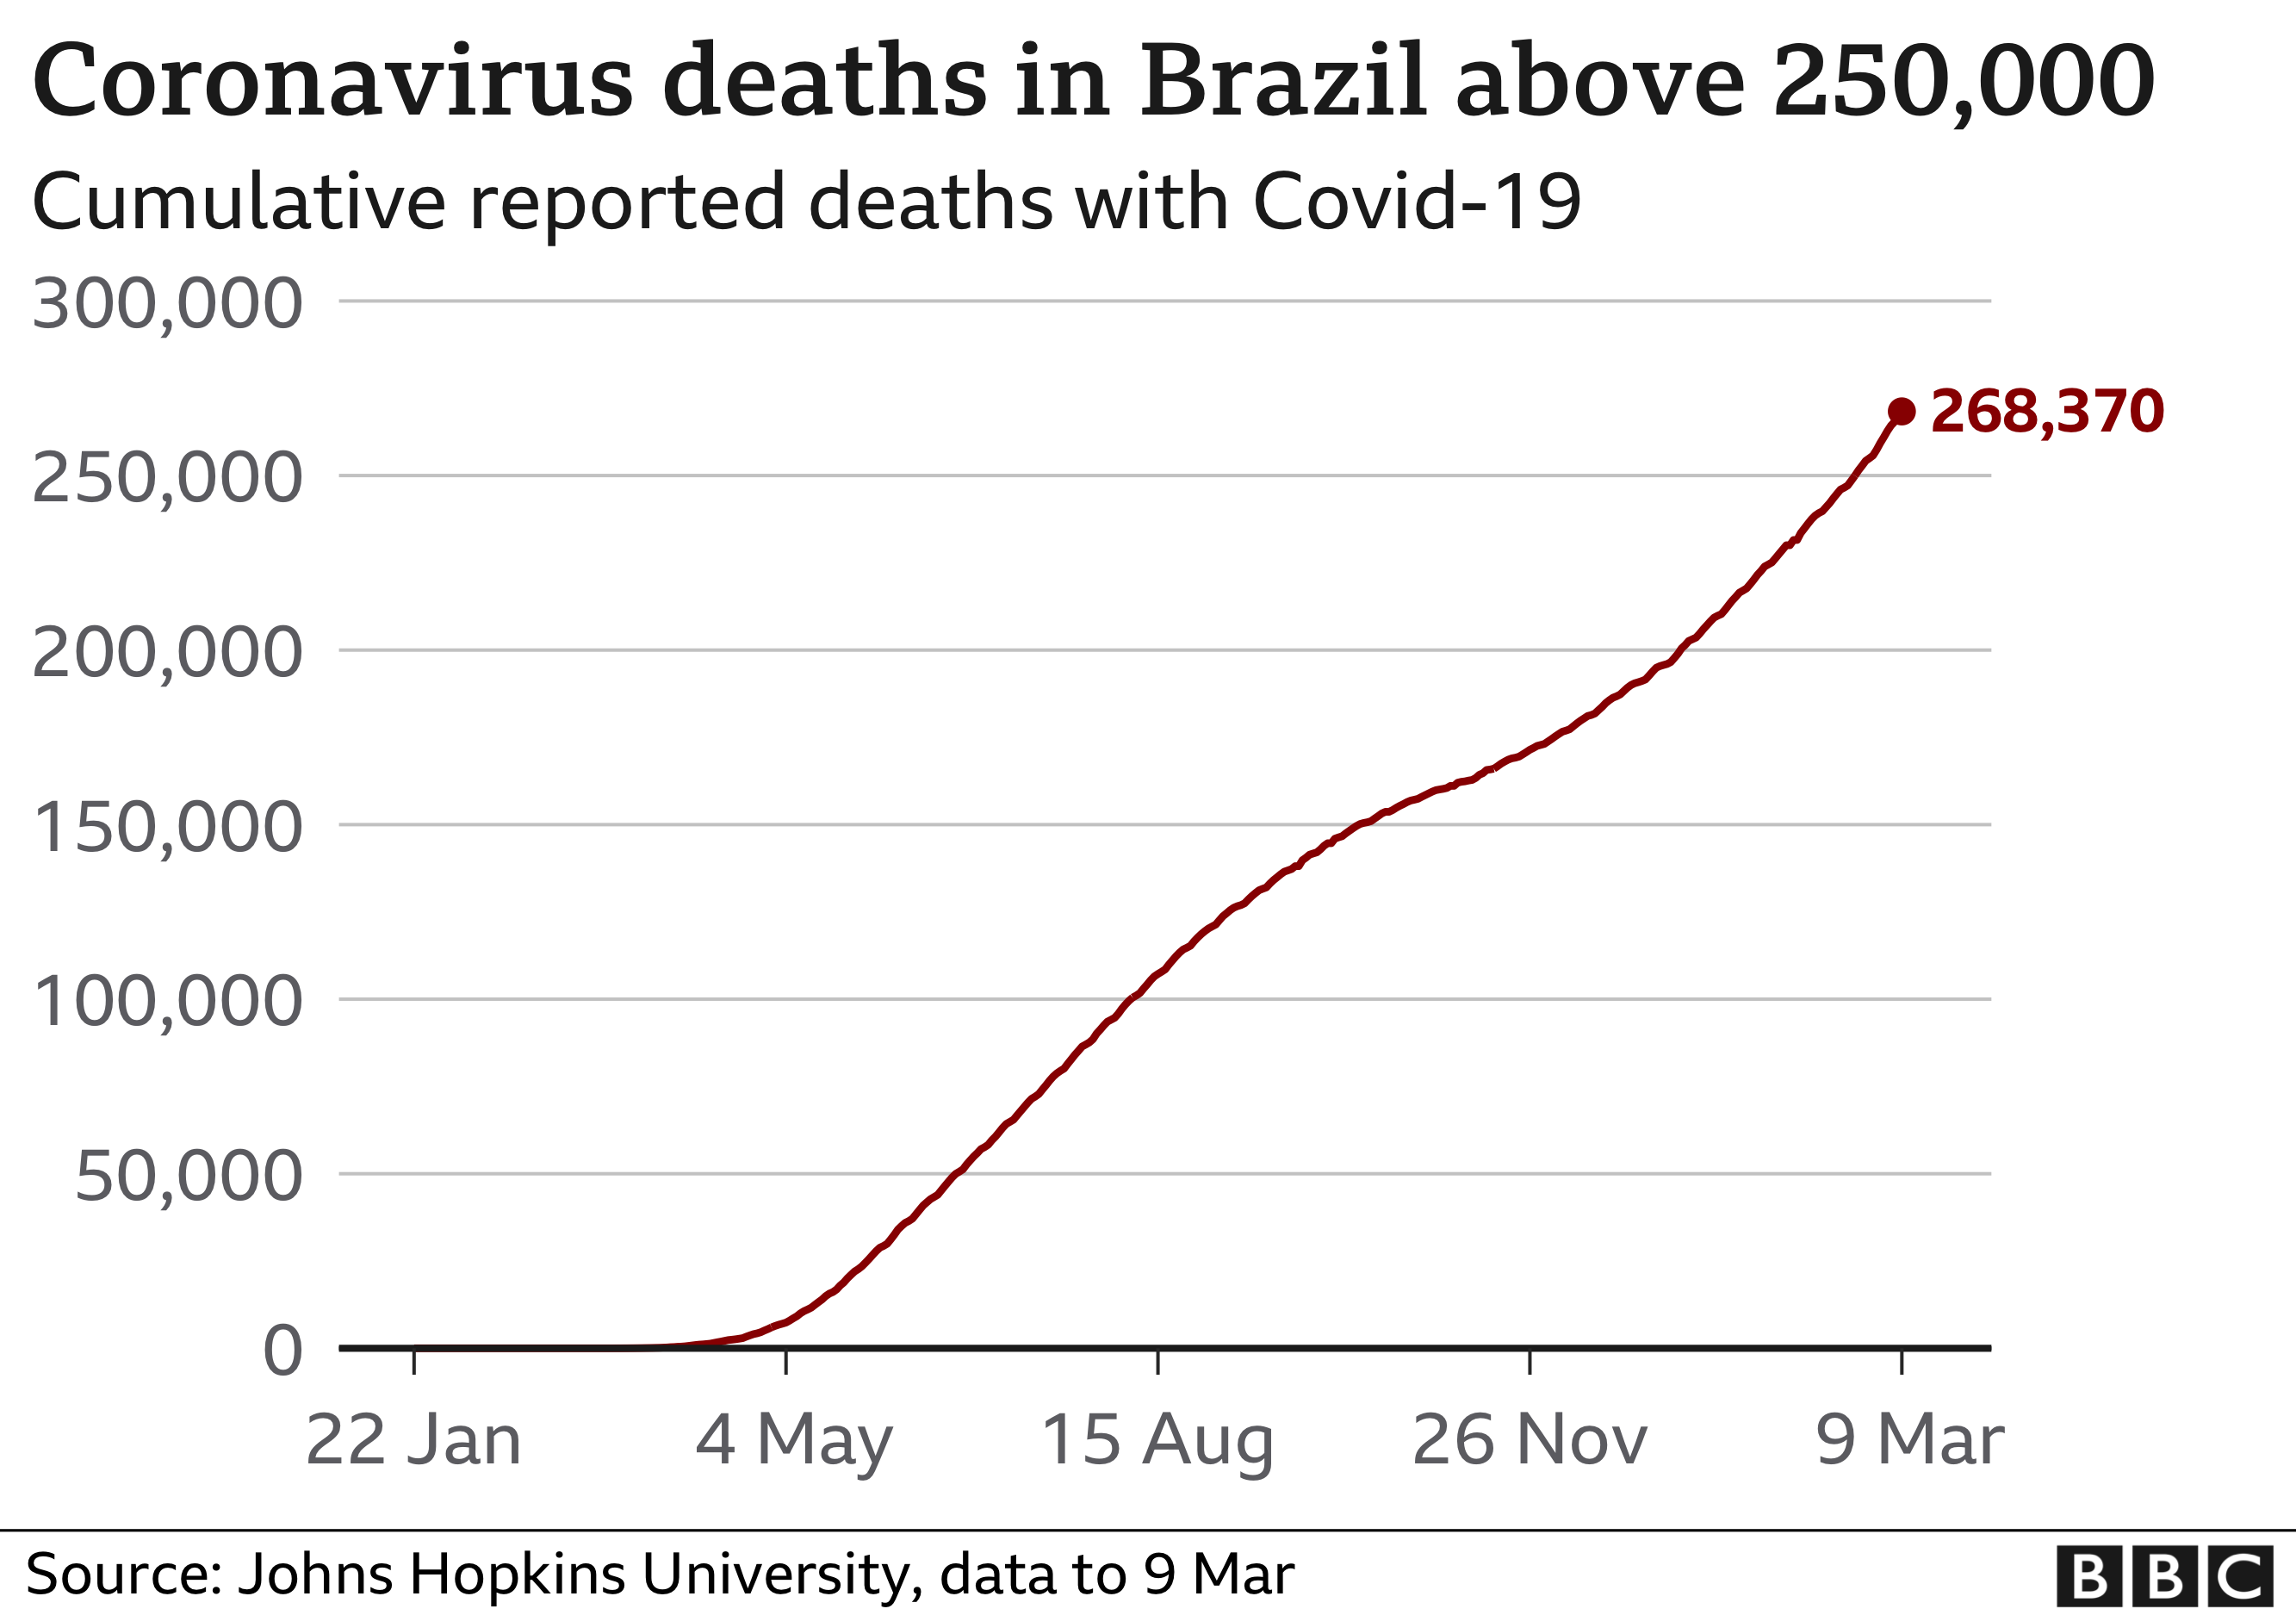 Graph shows cumulative reported deaths in Brazil